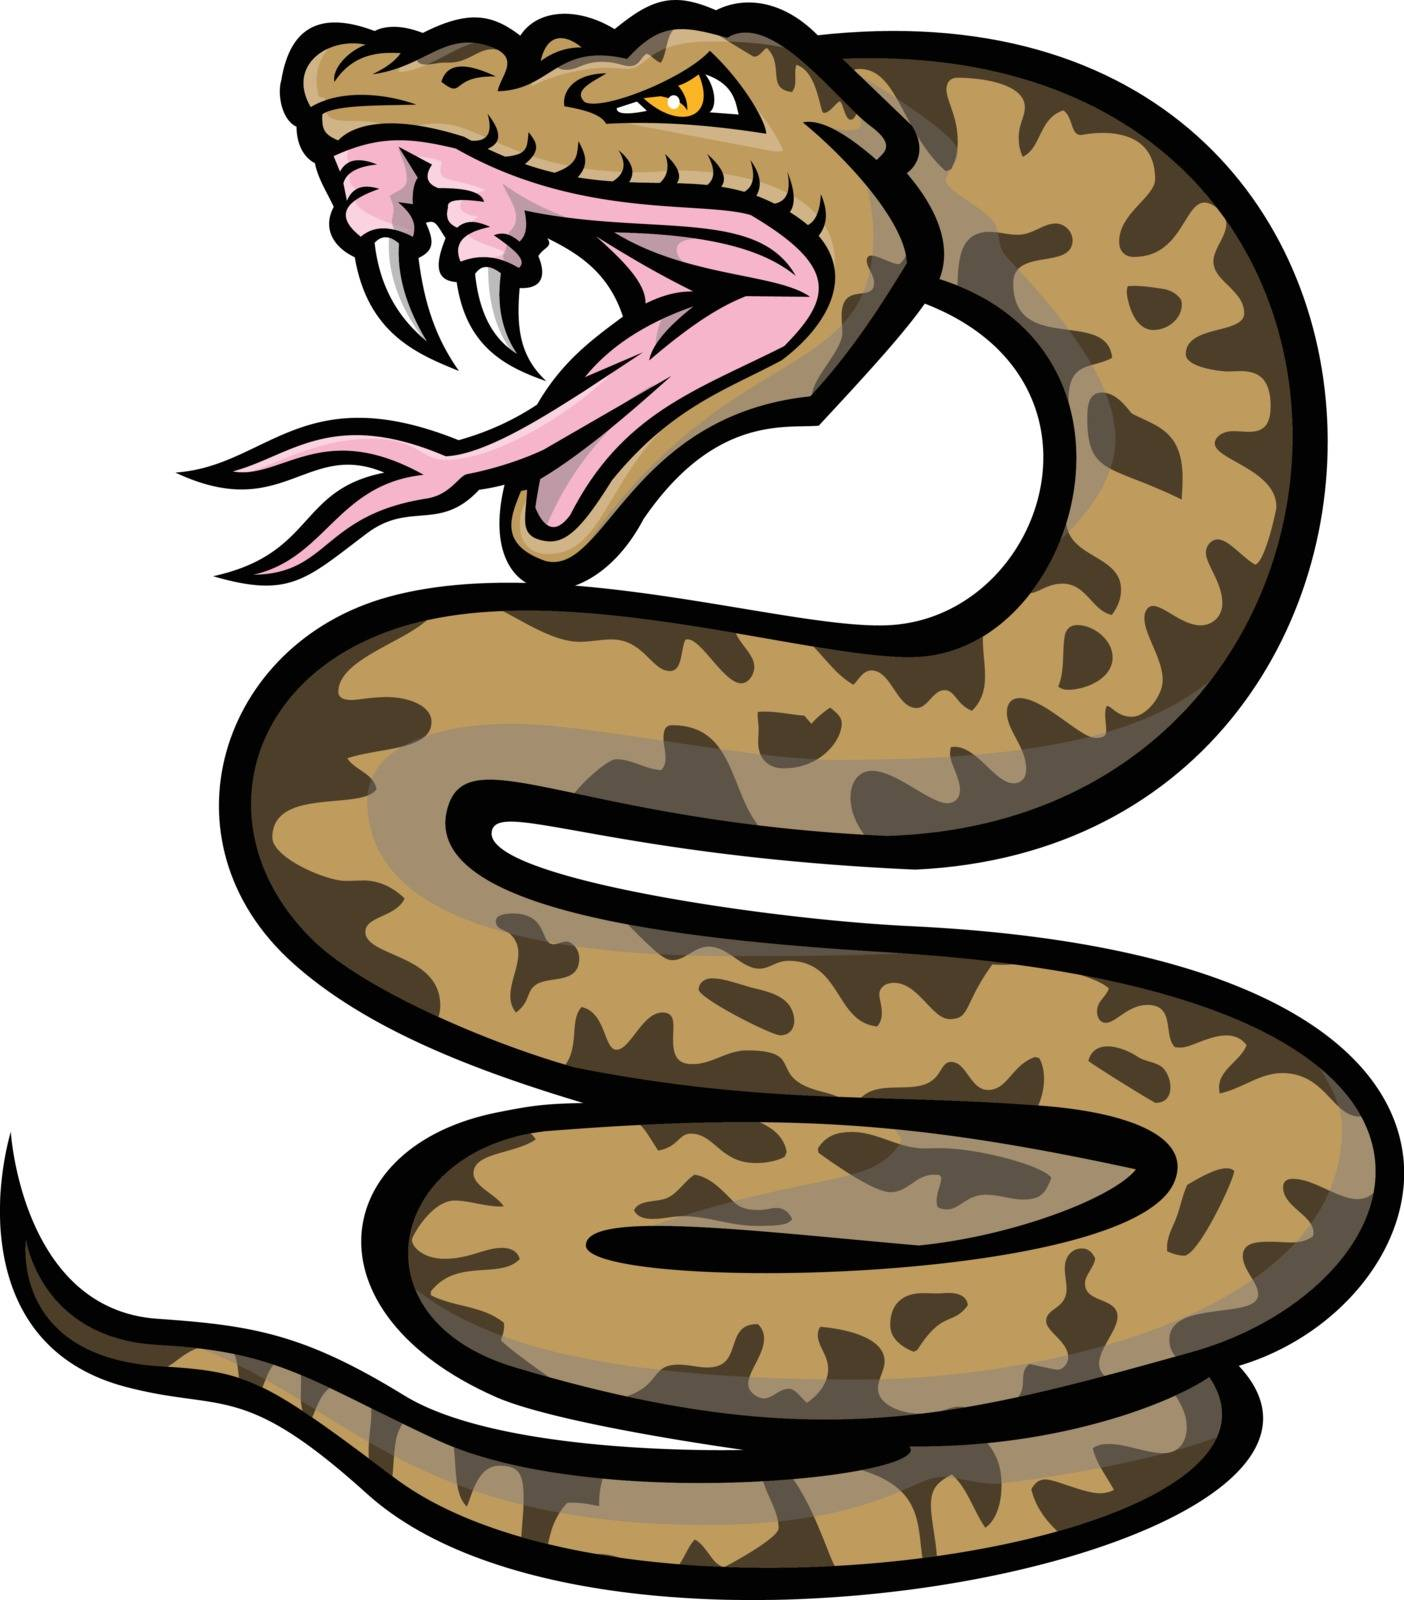 Mascot icon illustration of an aggressive habu snake, Okinawa habu or Kume Shima habu, a species of venomous pit viper endemic to Japan, baring it's fangs on isolated background in retro style.